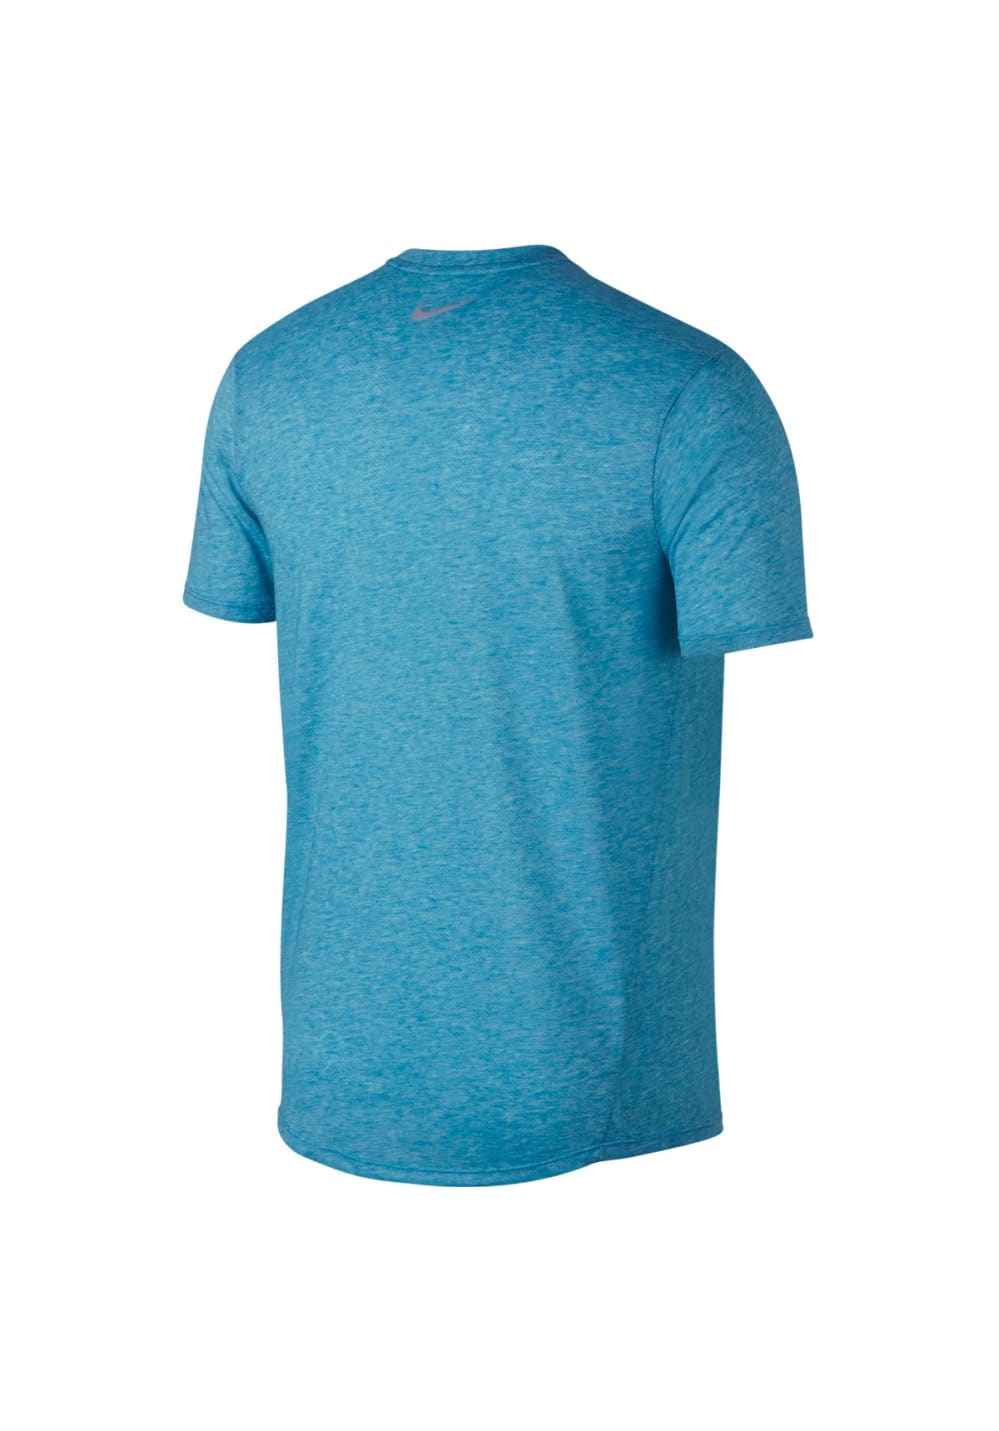 9ee1dc6a Next. Nike. Breathe Rise 365 Short Sleeve Top - Running tops for Men.  €39.95. incl. VAT, plus shipping costs. This article is not available ...